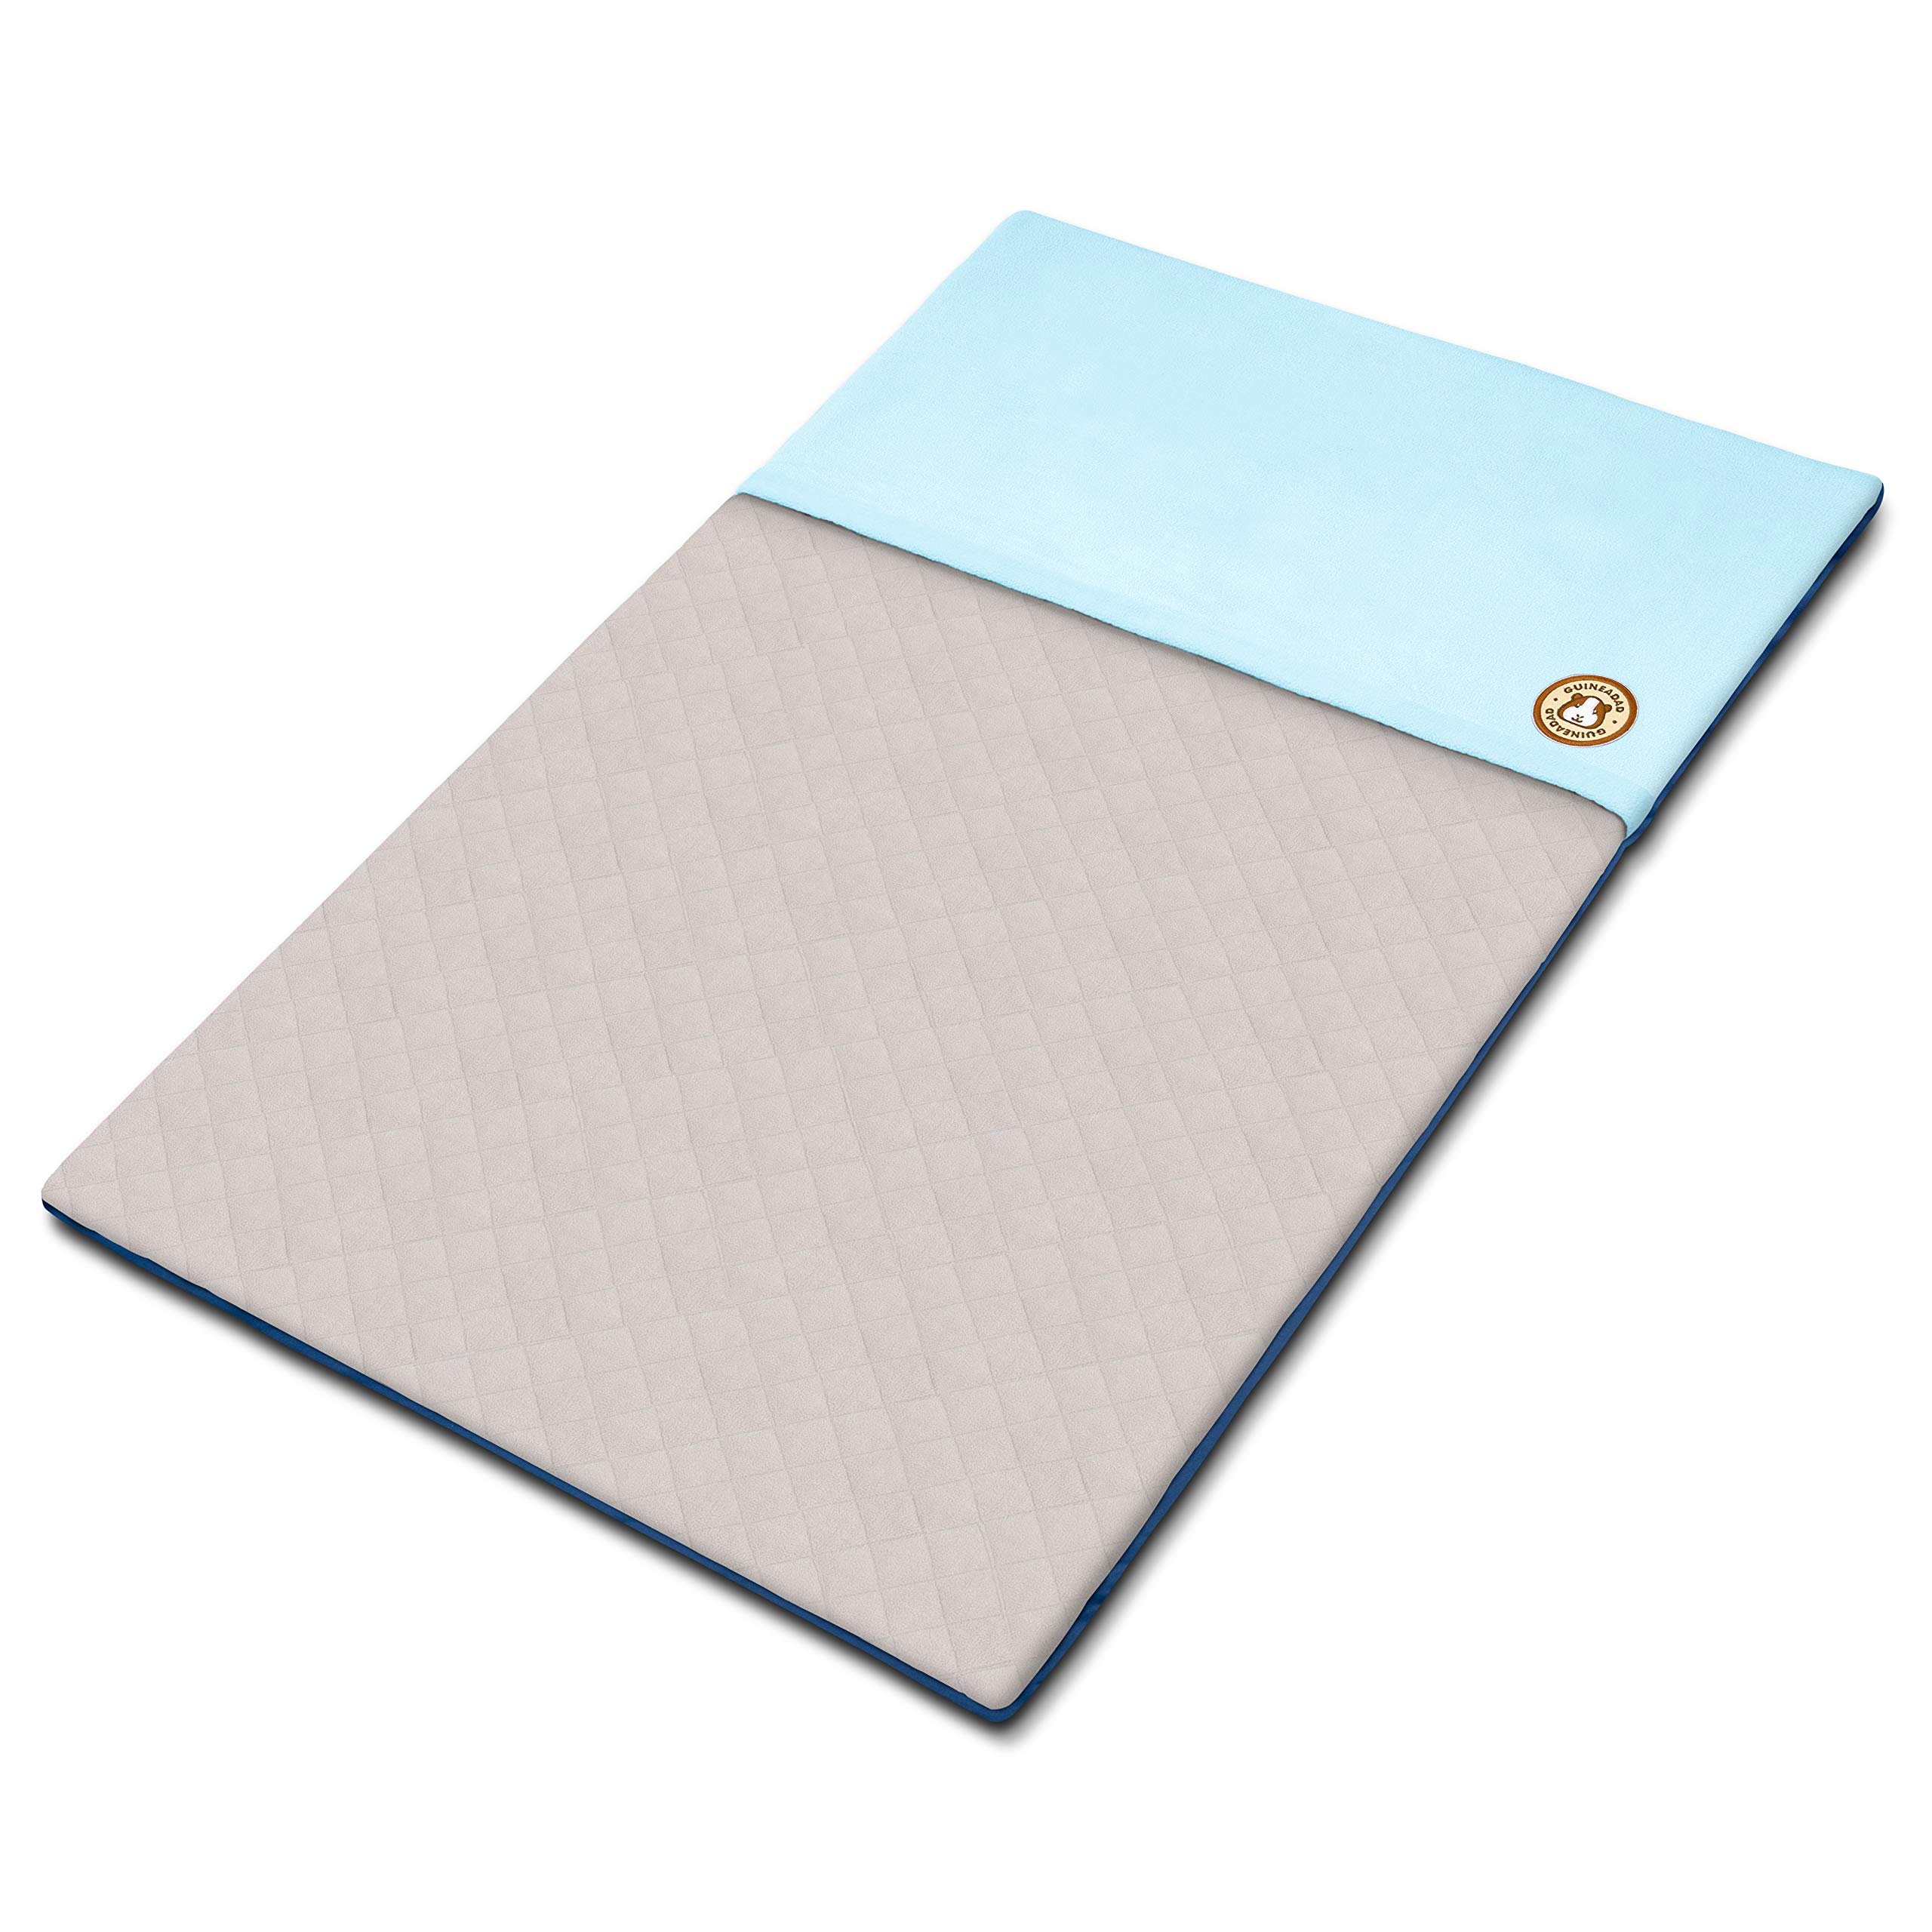 GuineaDad Fleece Liner 2.0 | Guinea Pig Fleece Cage Liners | Guinea Pig Bedding | Burrowing Pocket Sleeve | Absorbent Antibacterial Bamboo | Waterproof | Available Various Cage Sizes